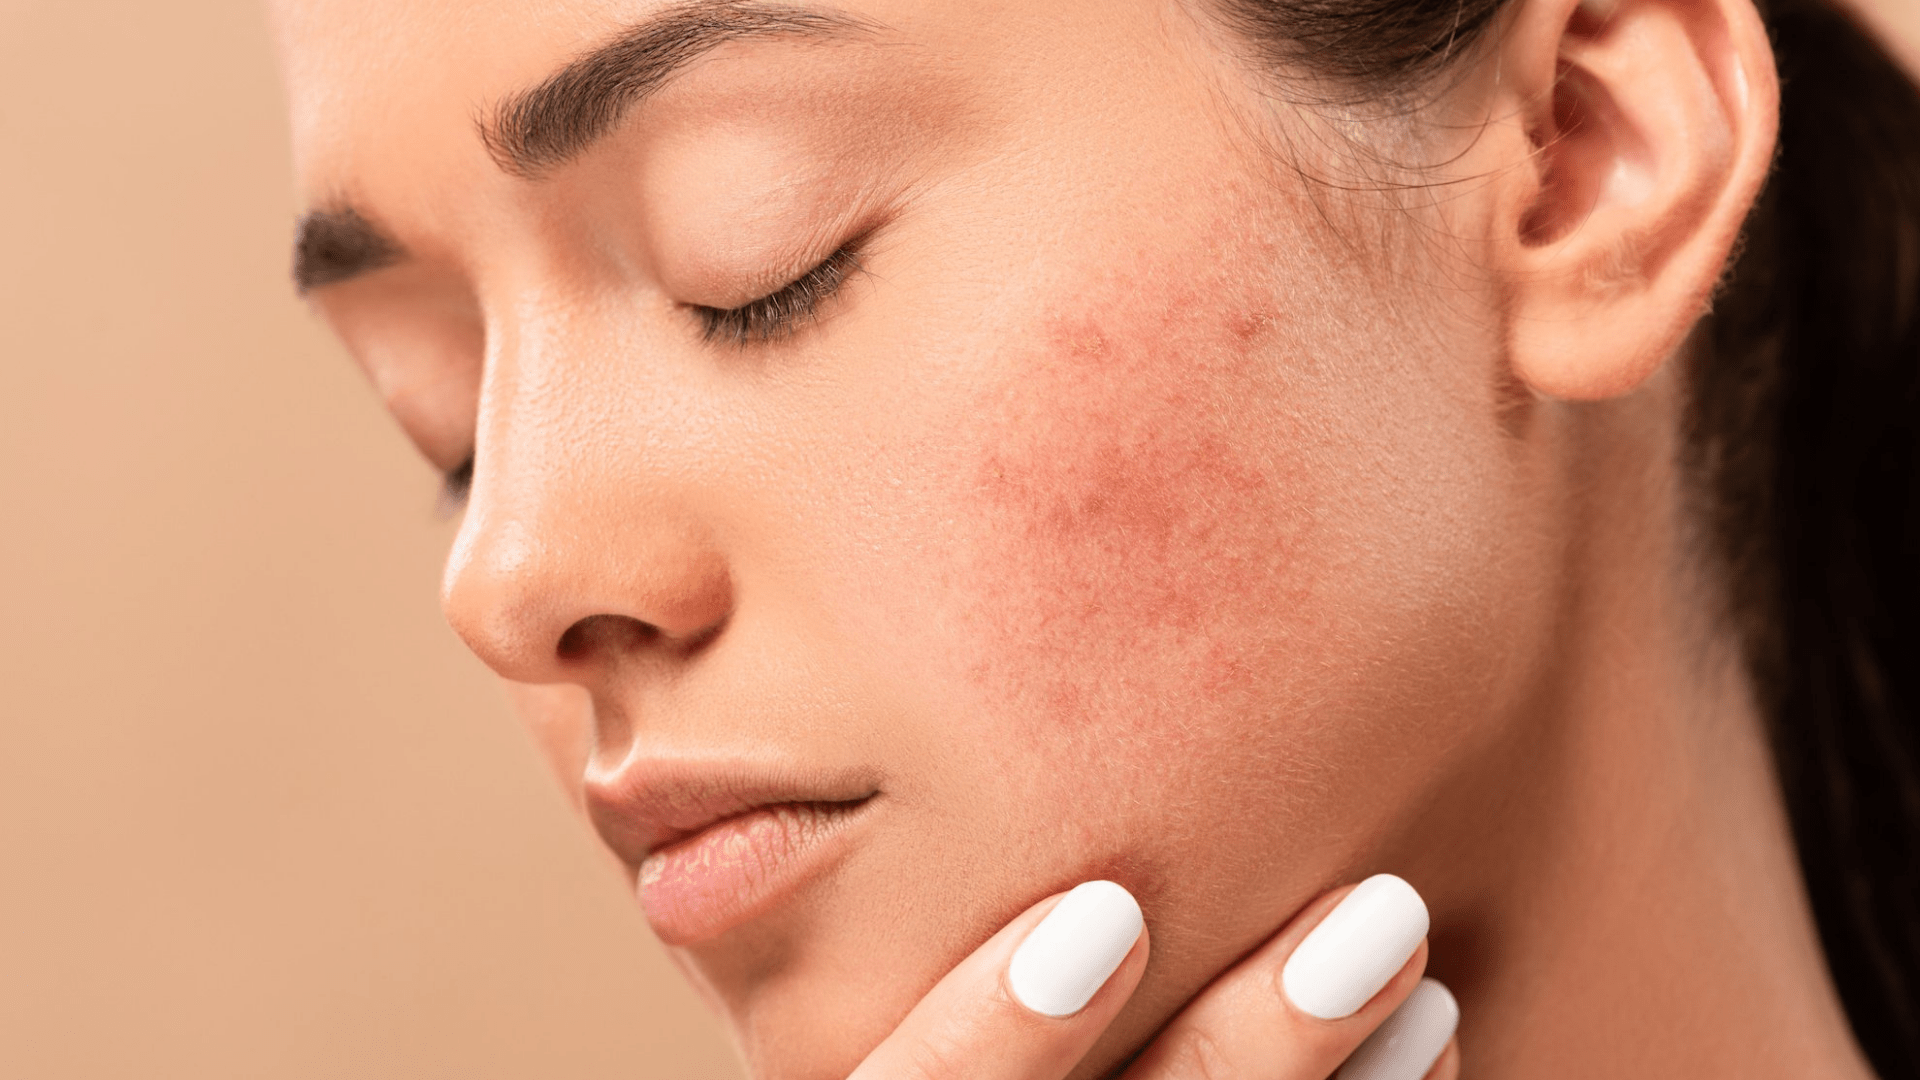 How to Get Rid of Acne Scars Naturally in Simple Steps